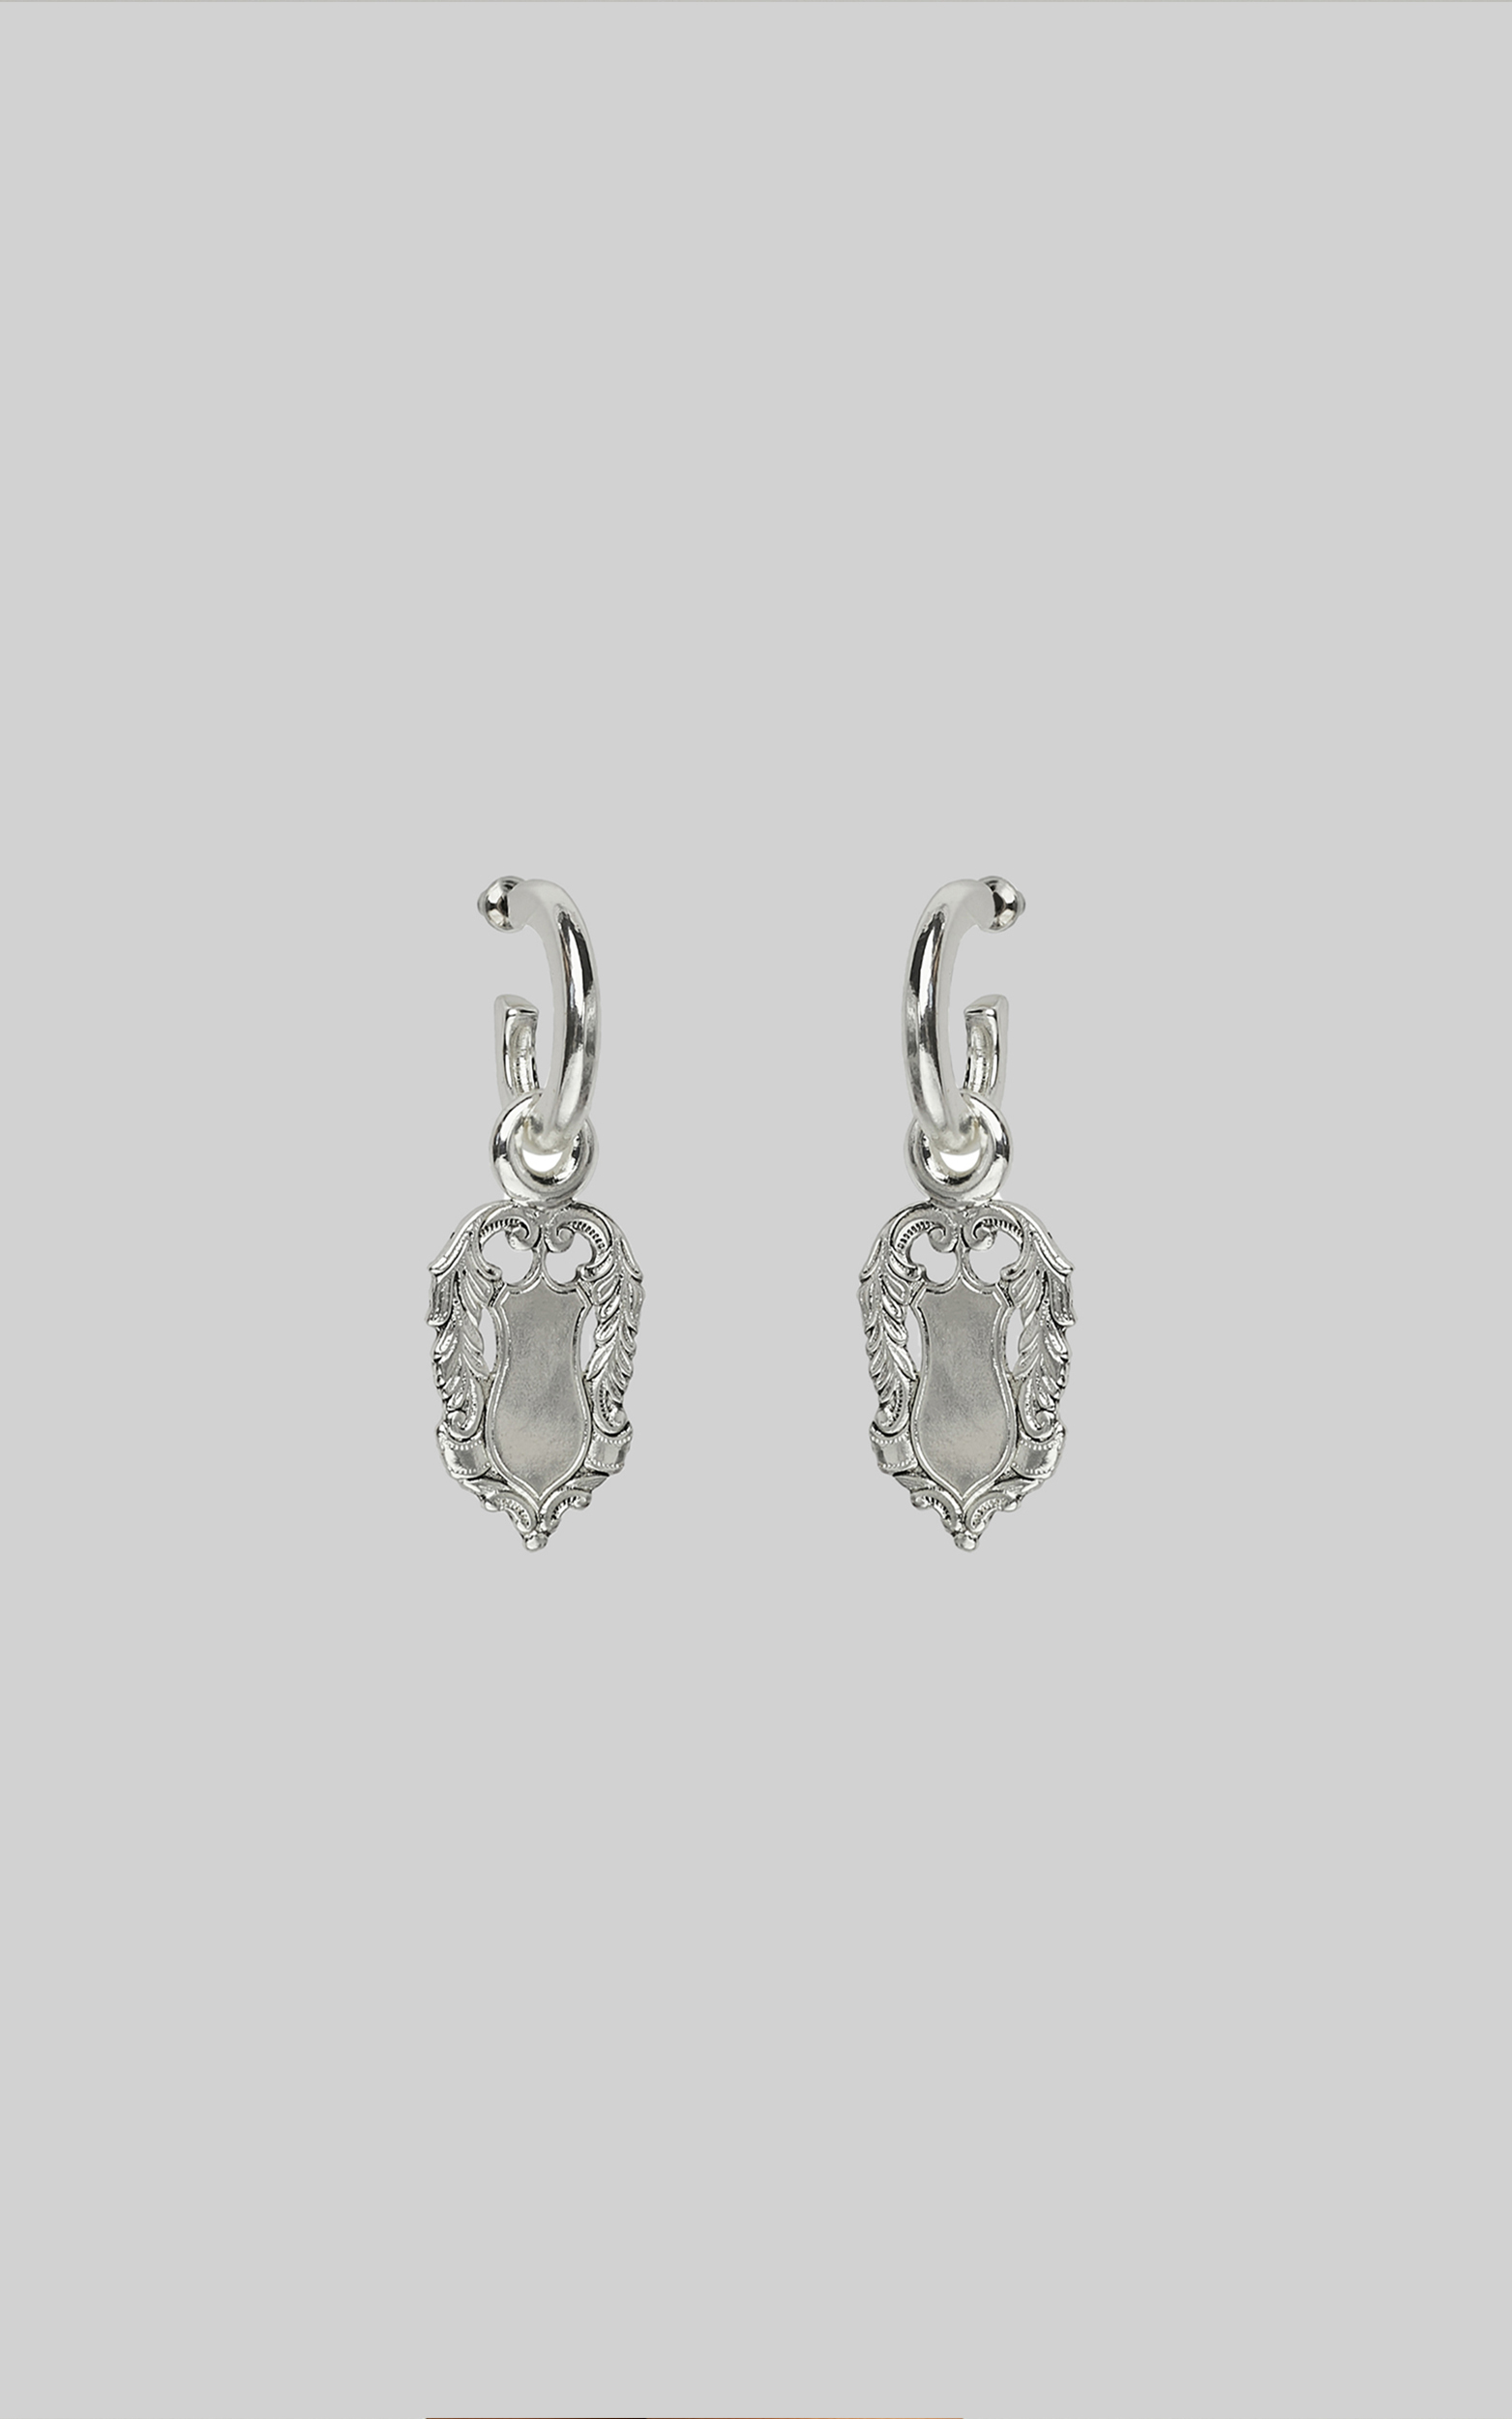 KITTE - AMULET EARRINGS in Silver - NoSize, SLV2, hi-res image number null